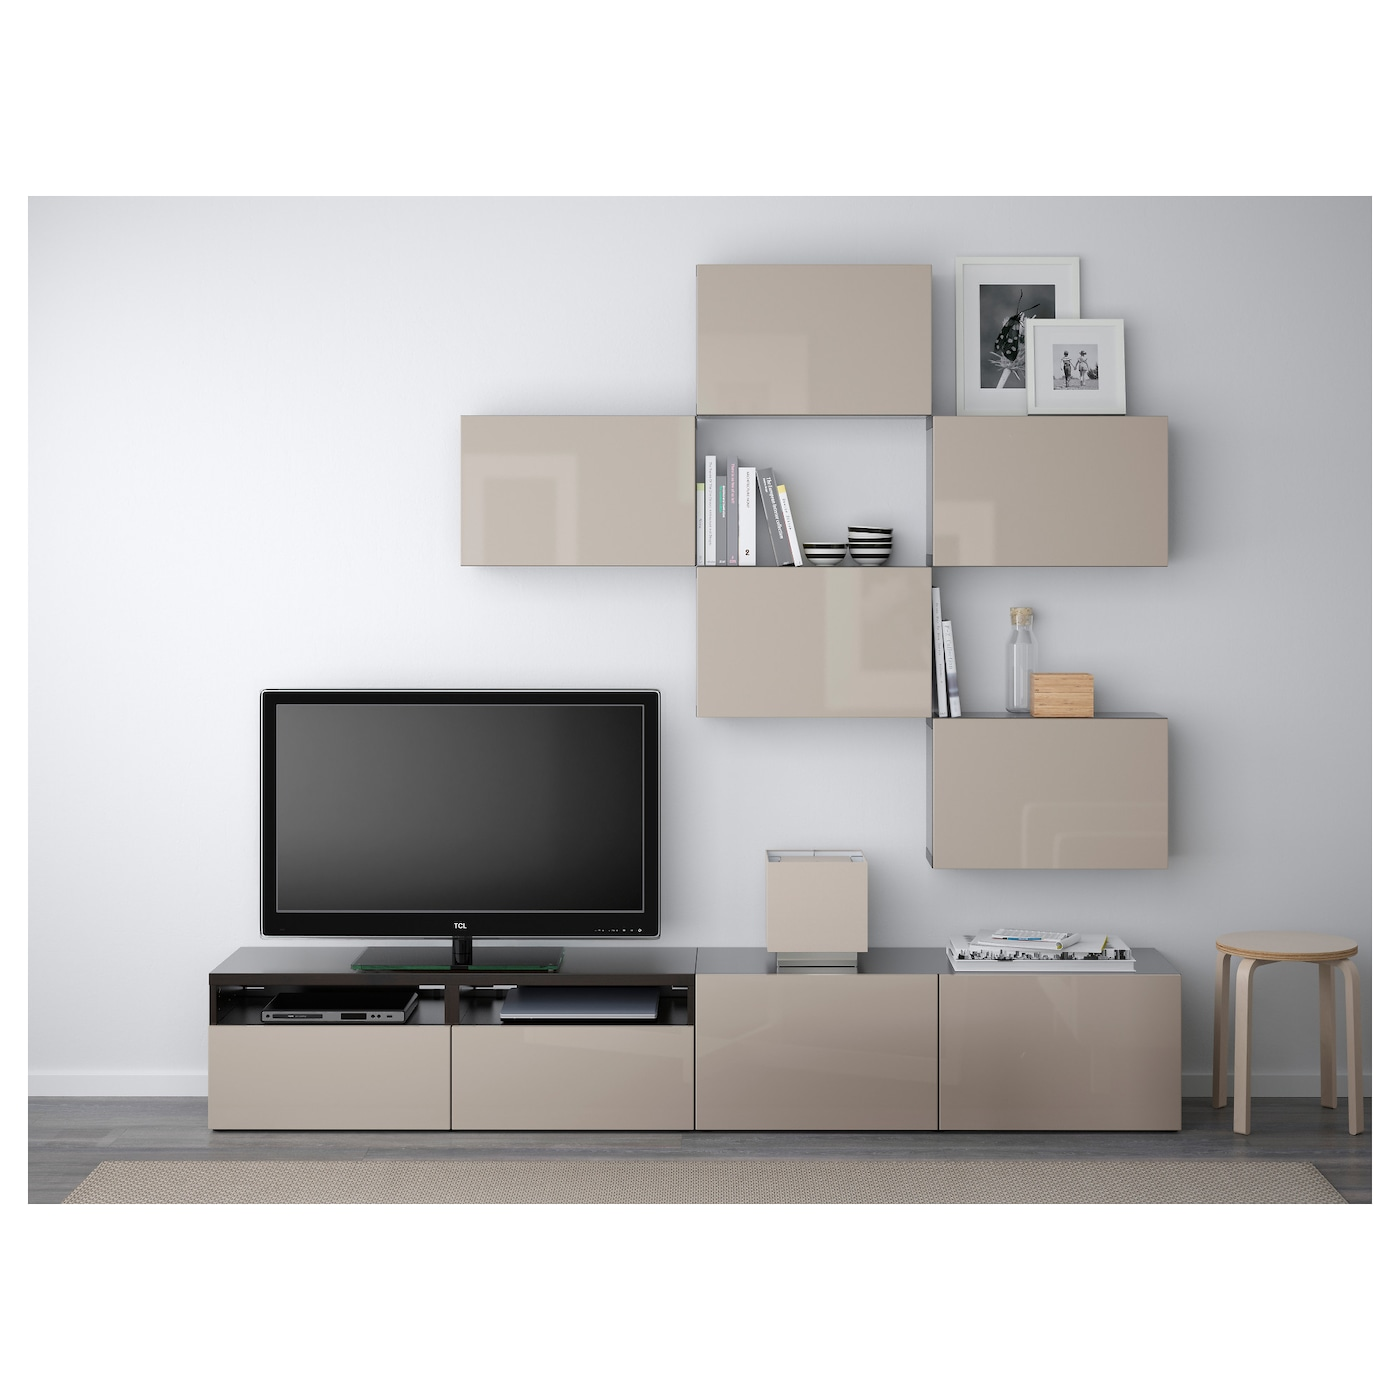 best tv storage combination black brown selsviken high gloss beige 240 x 20 40 x 204 cm ikea. Black Bedroom Furniture Sets. Home Design Ideas